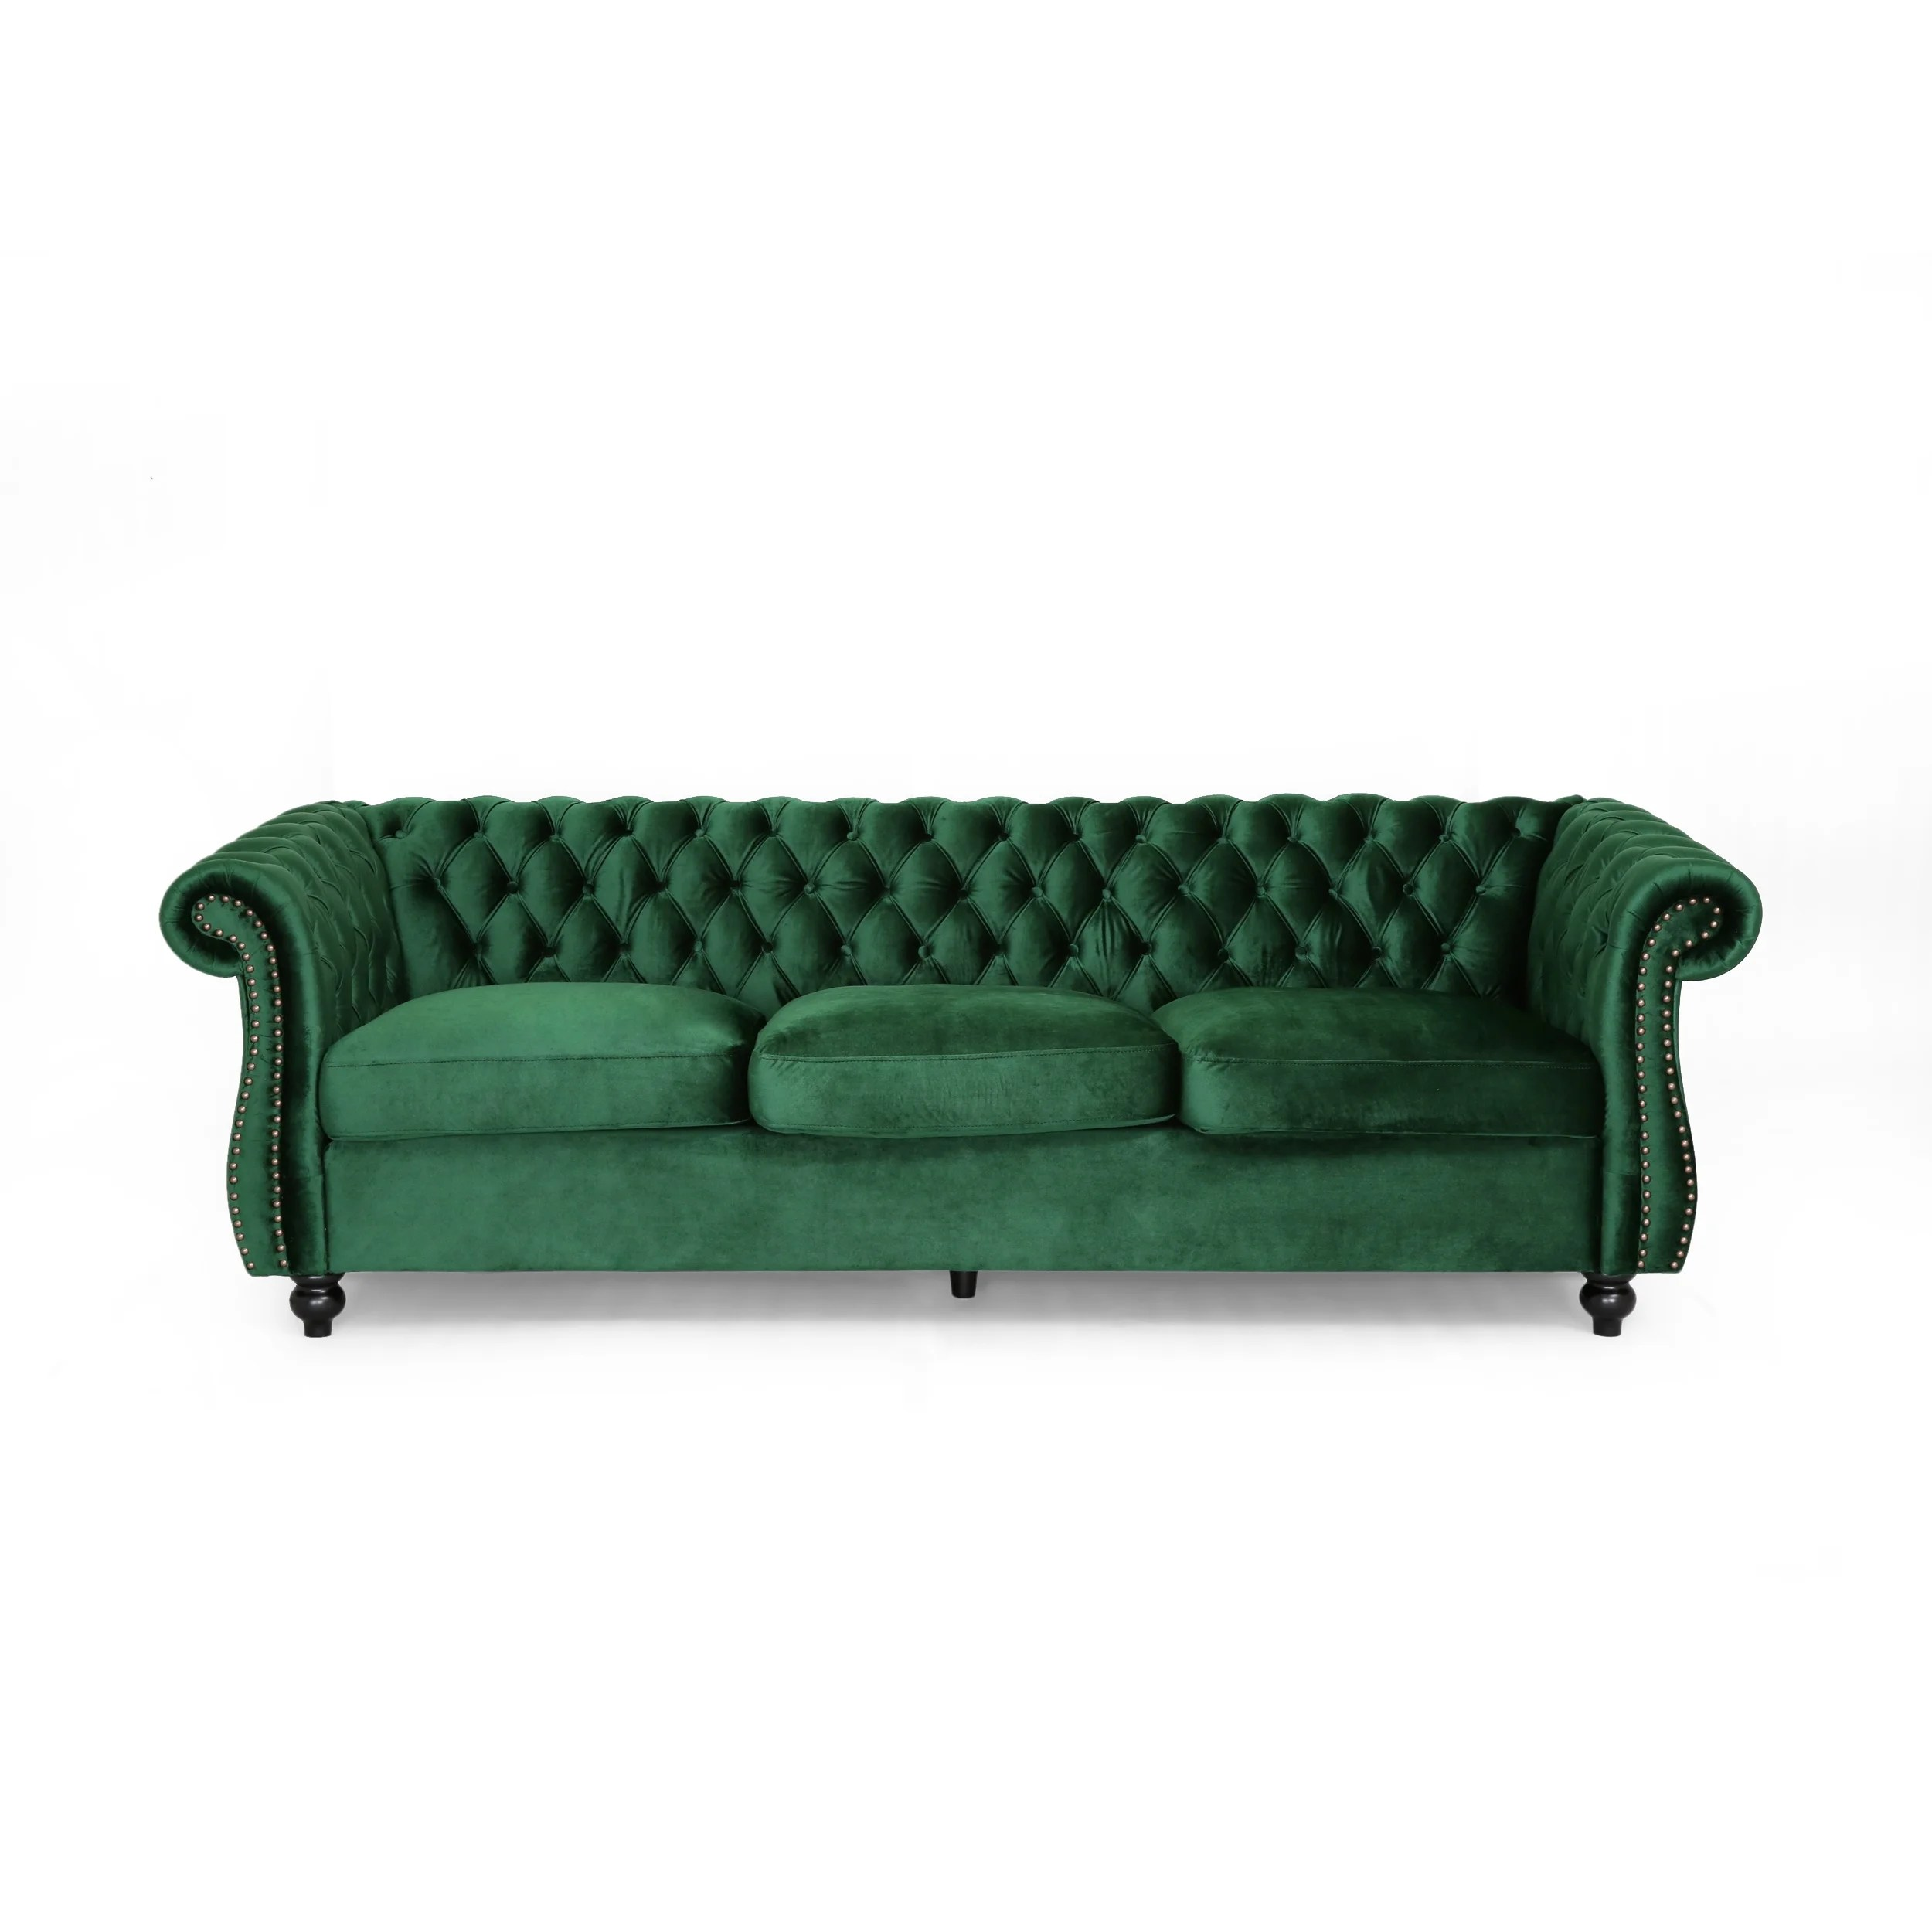 Somerville Chesterfield Tufted Velvet Sofa By Christopher Knight Home On Sale Overstock 24242295